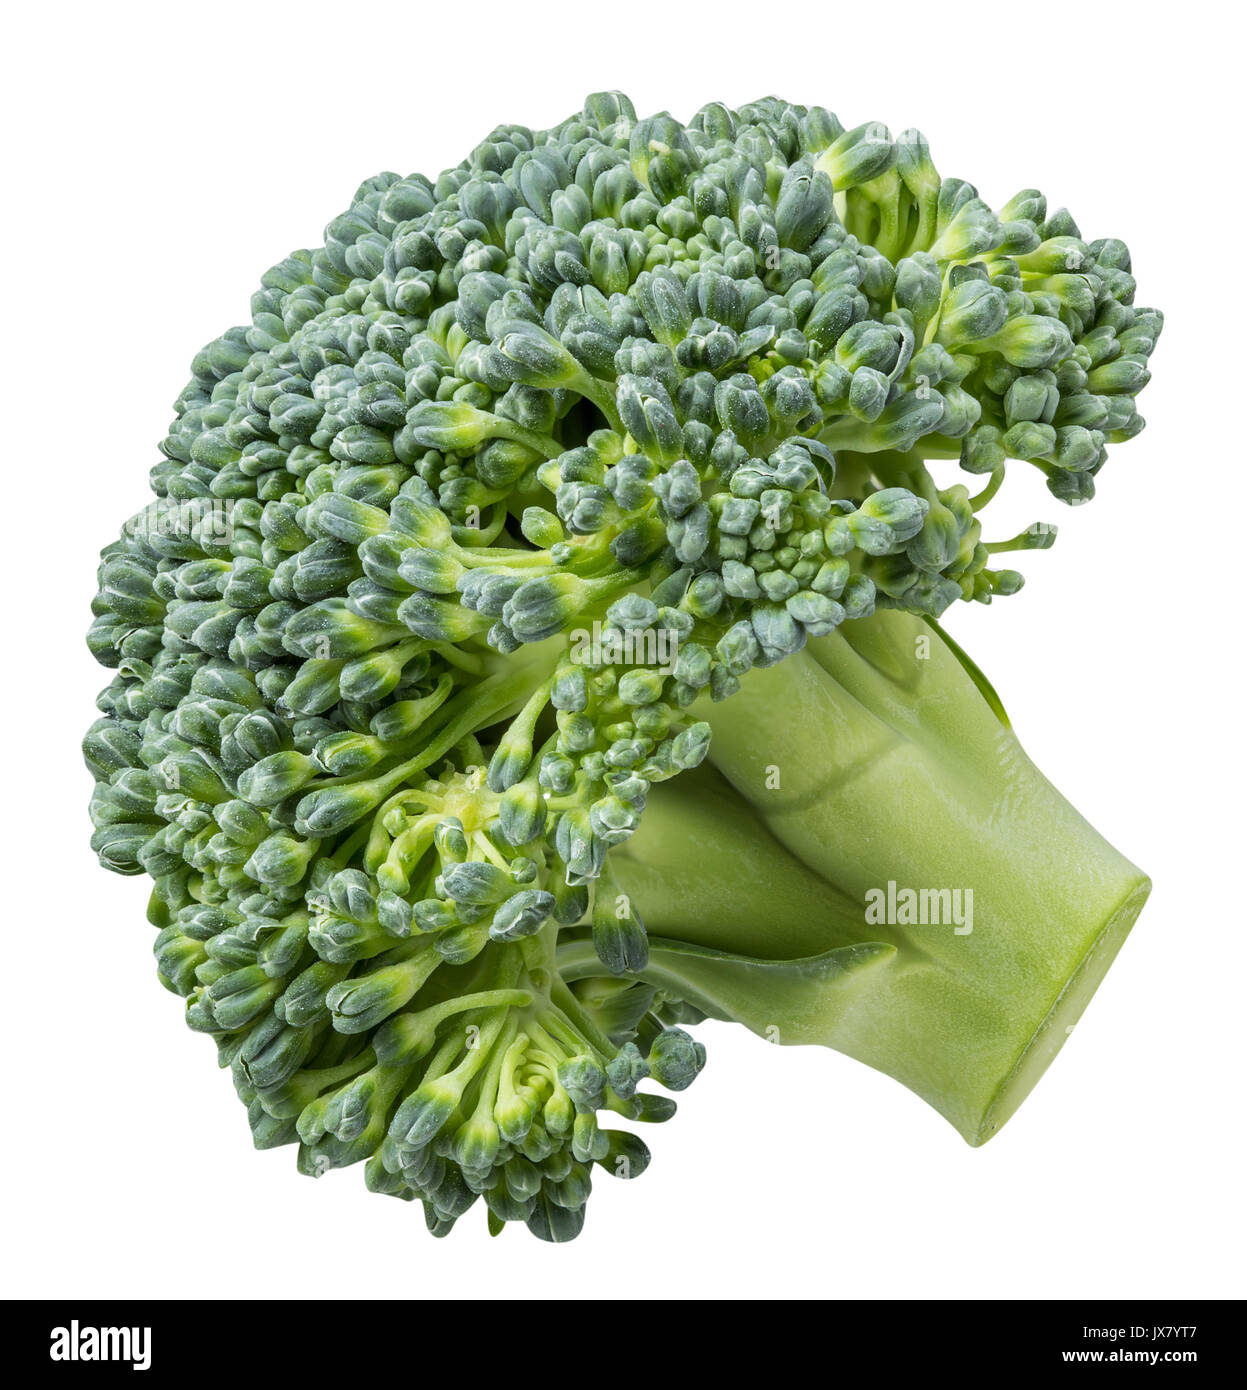 Cabbage broccoli isolated on white background with clipping path Stock Photo